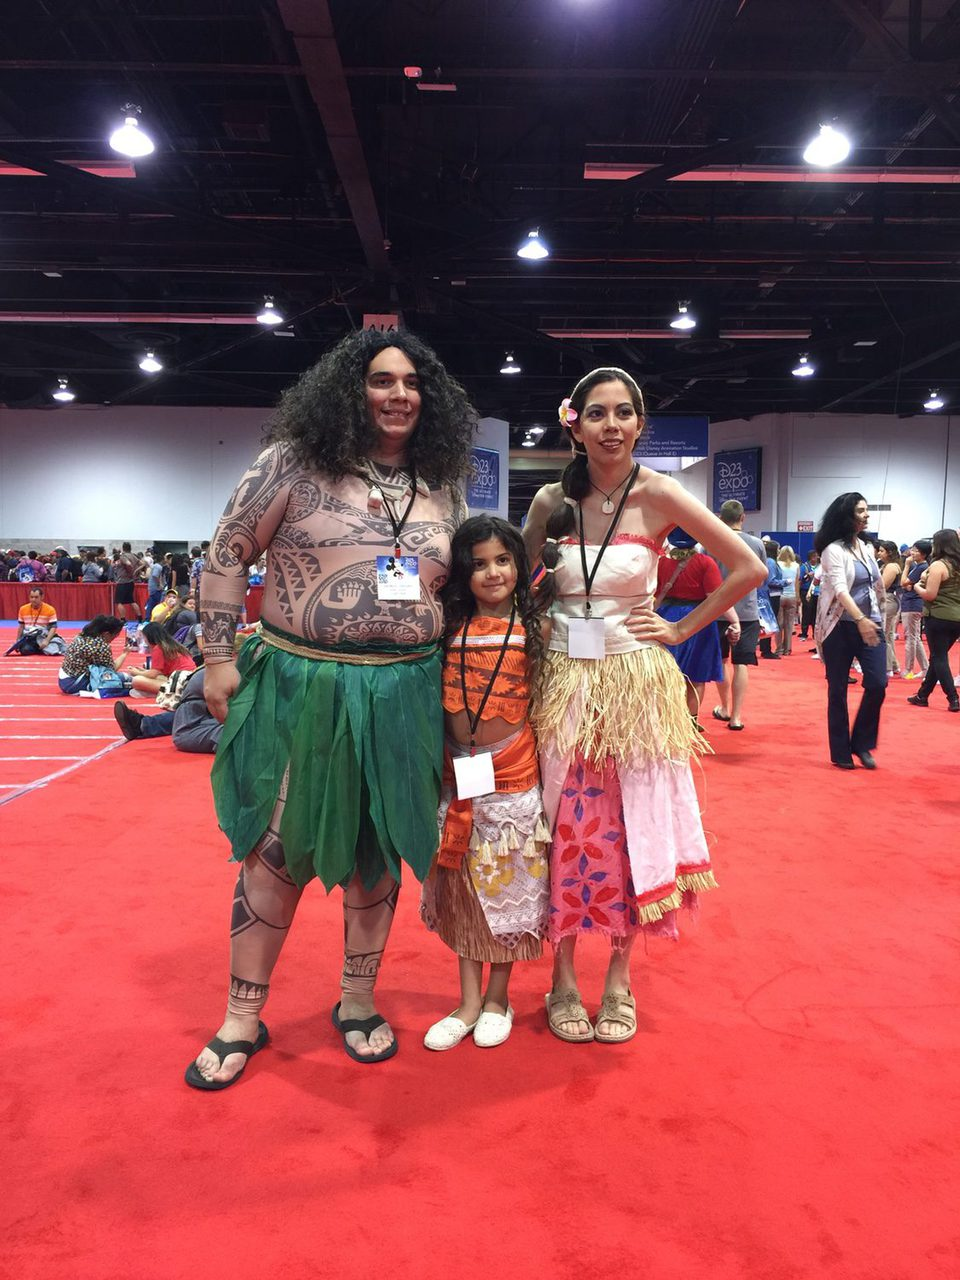 Family dressed up like characters of 'Moana' in the D23